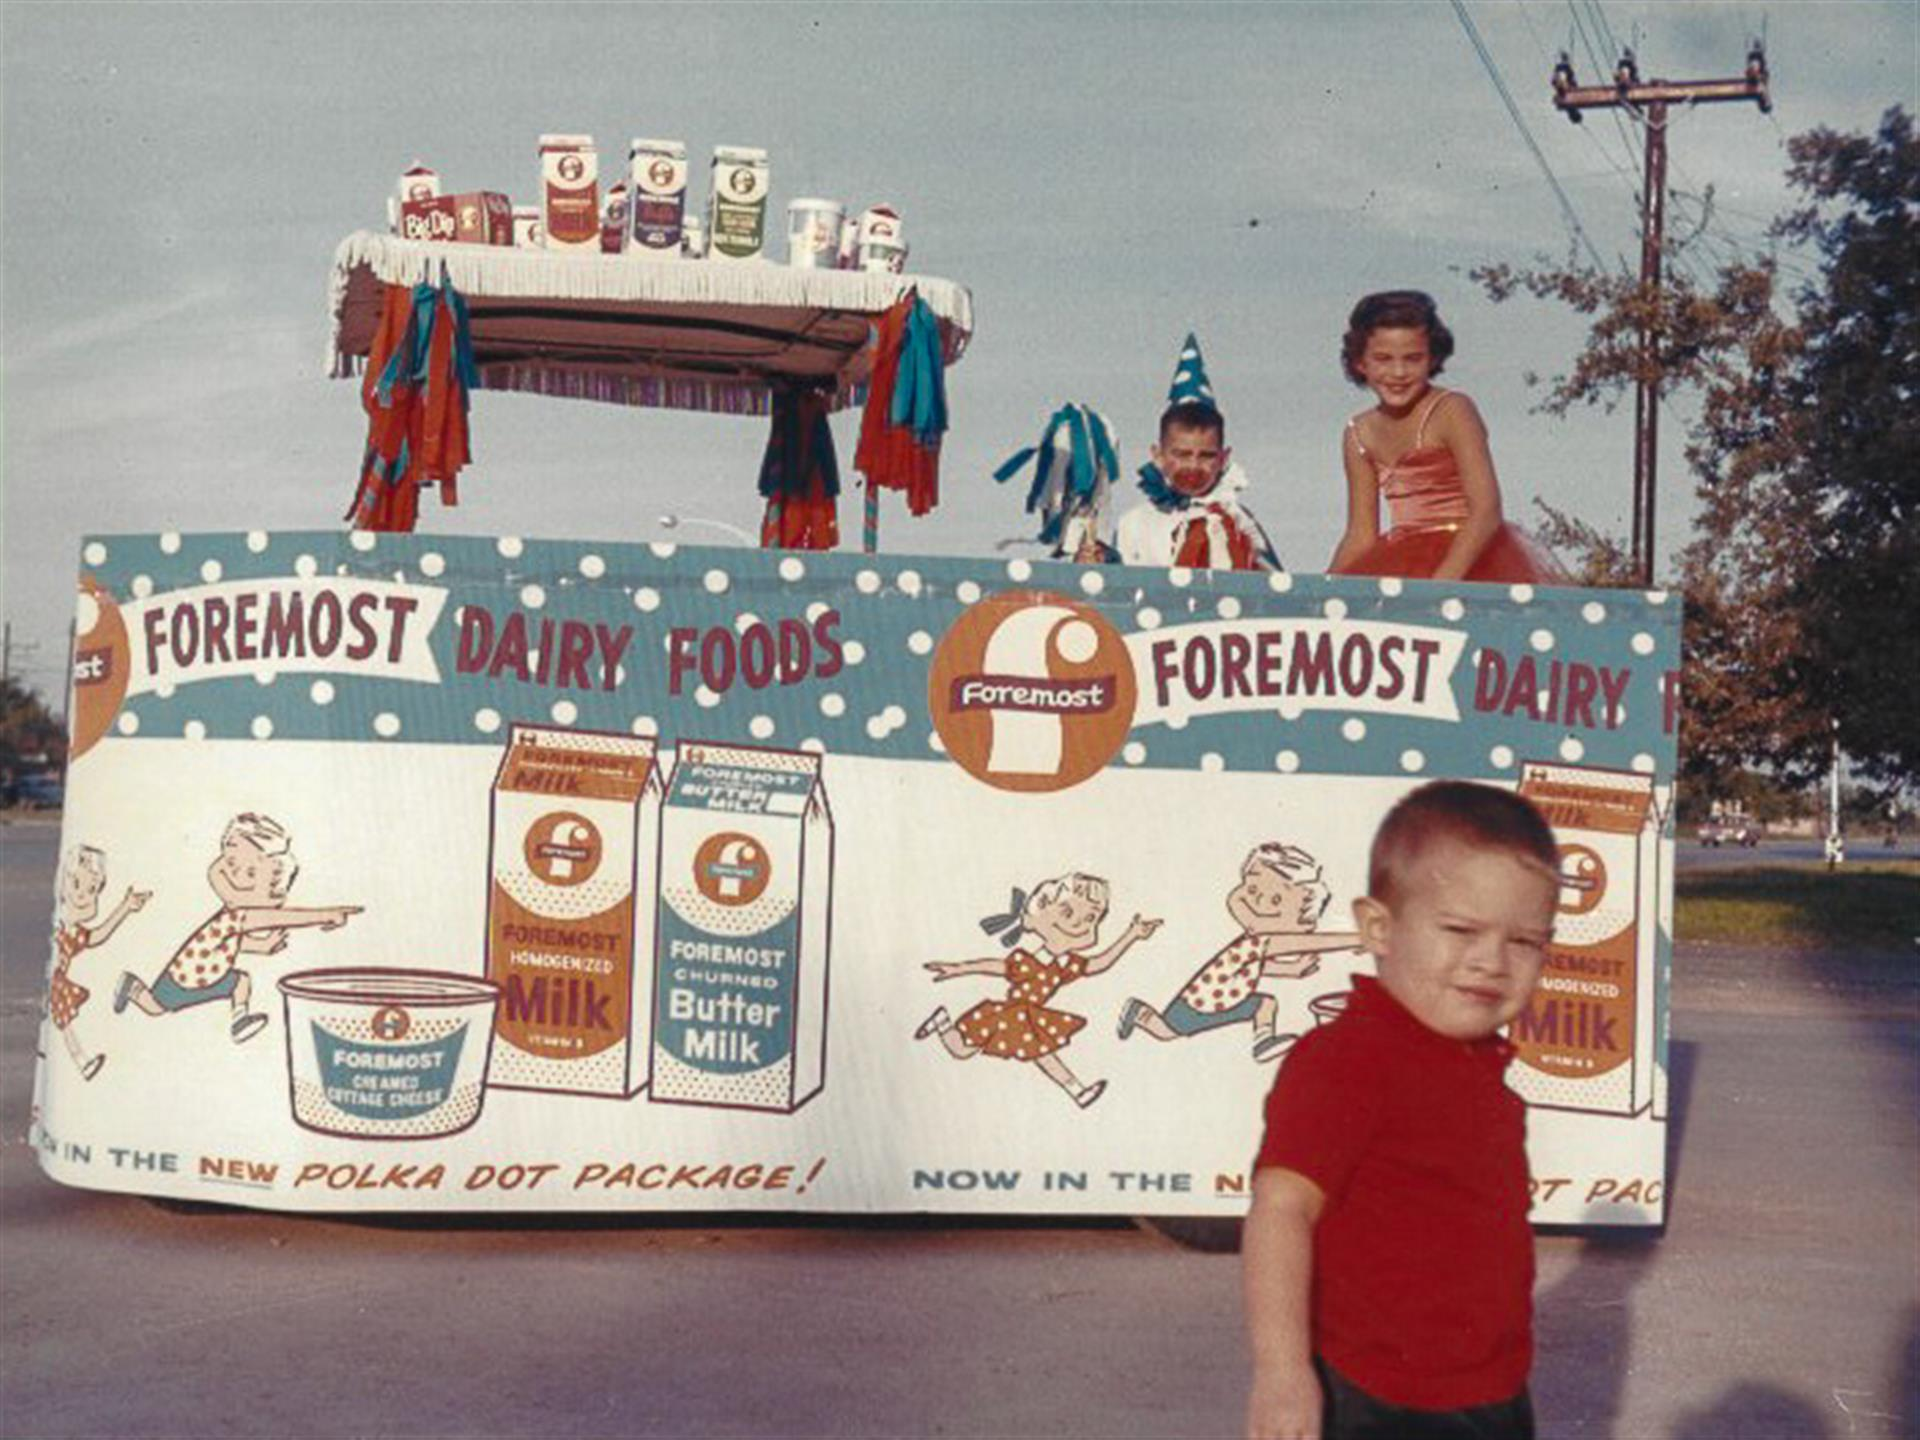 family taking a photo in front of a sign promoting foremost dairy foods